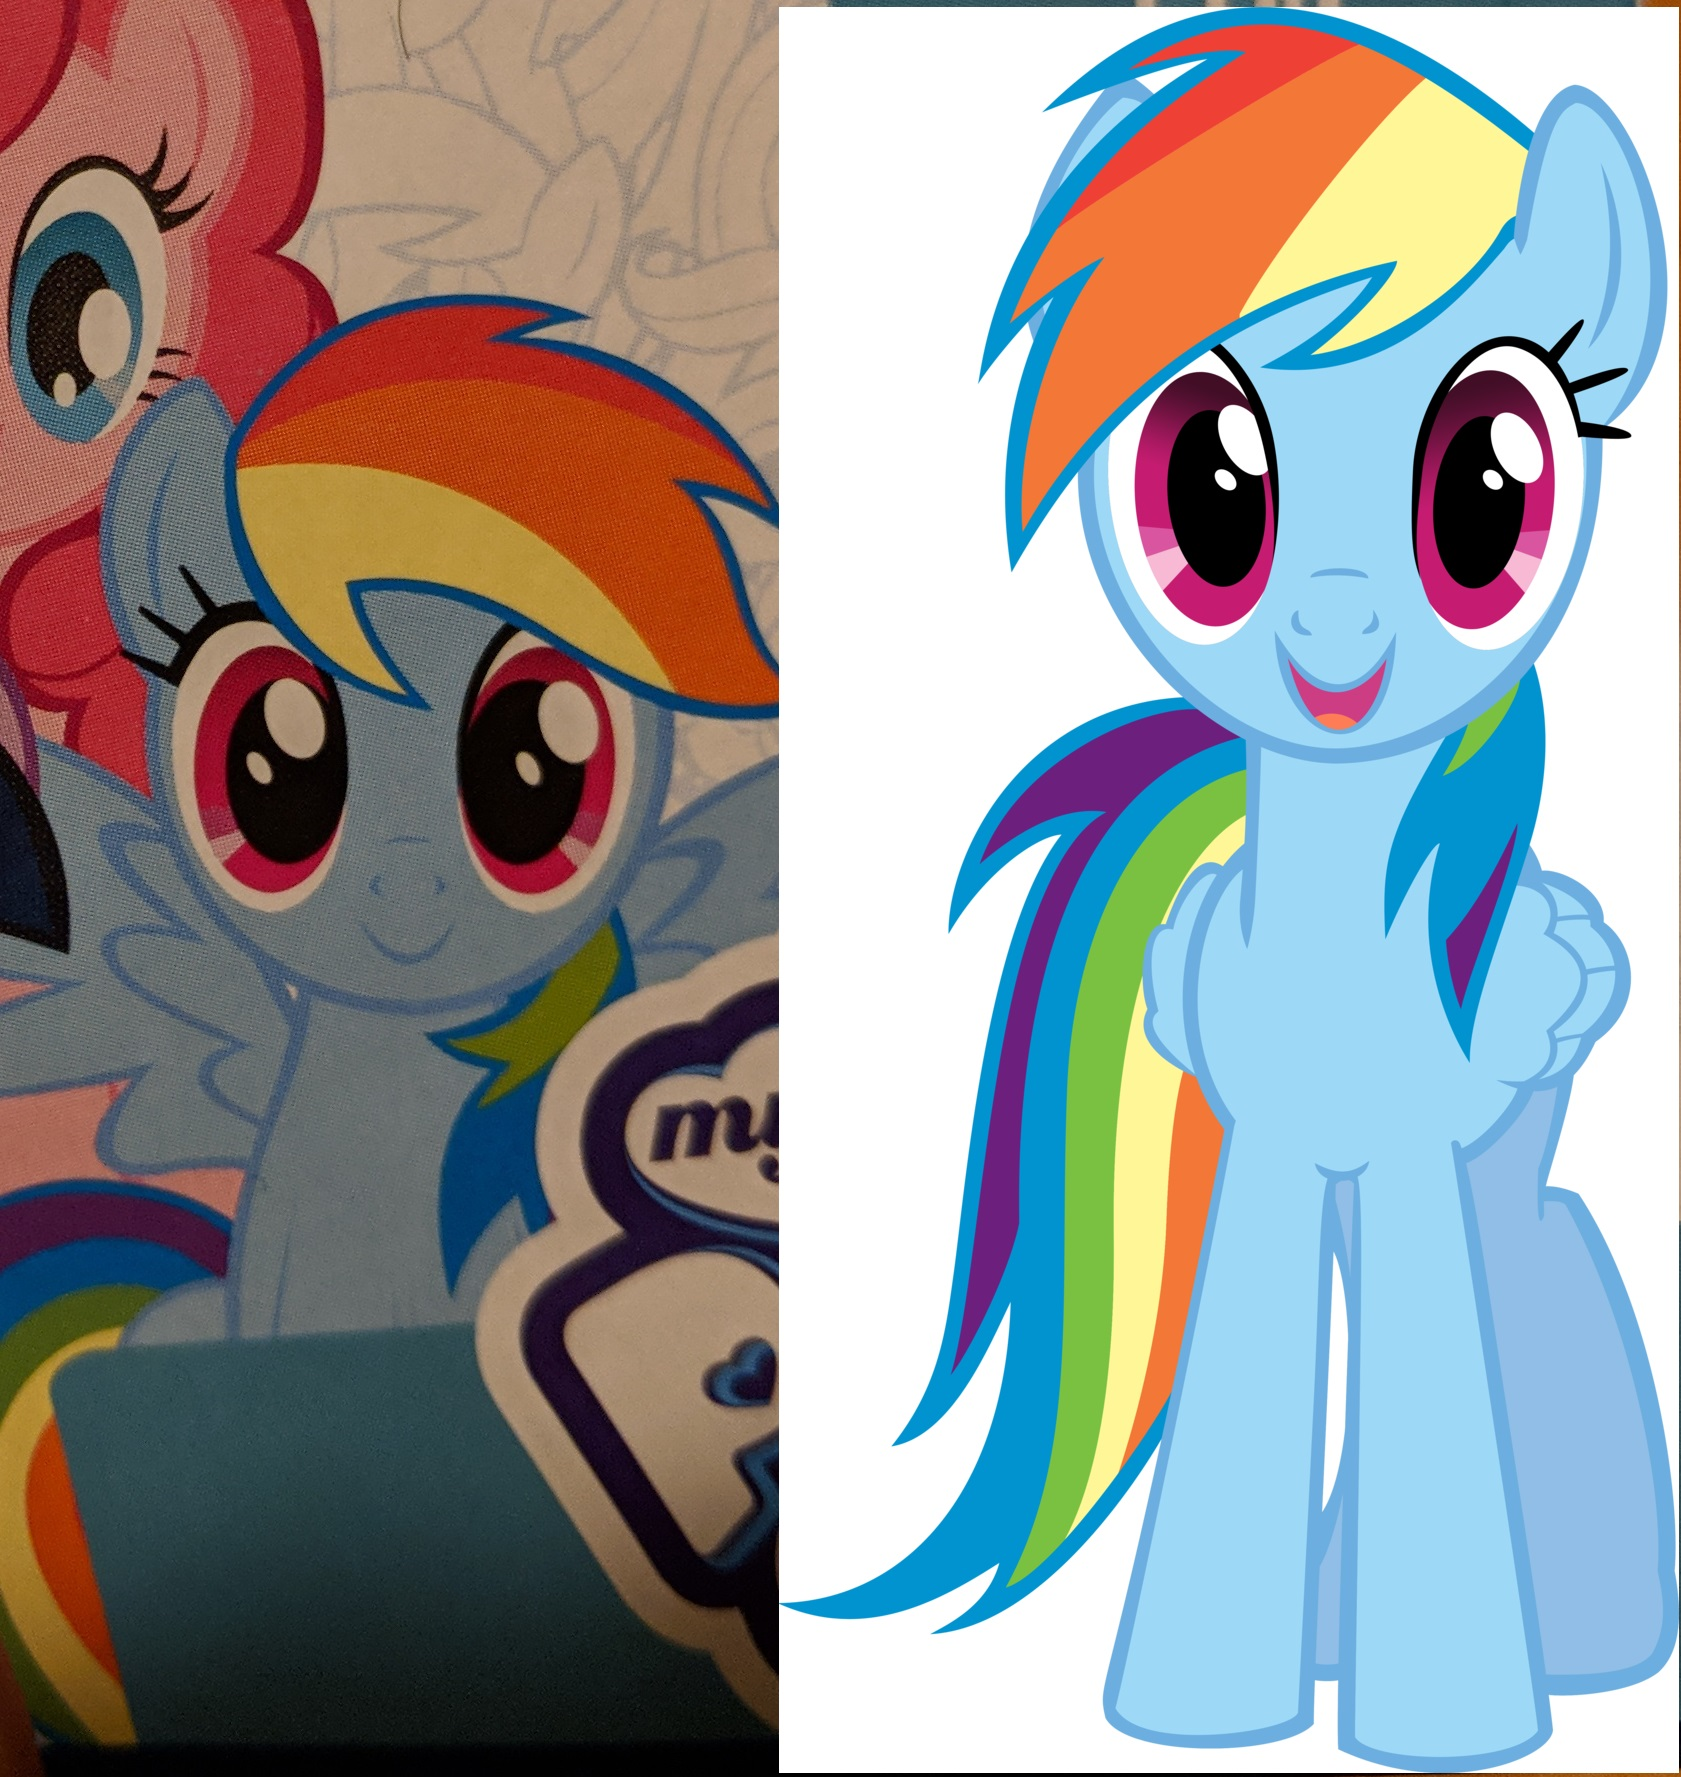 Rainbow Dash comparison